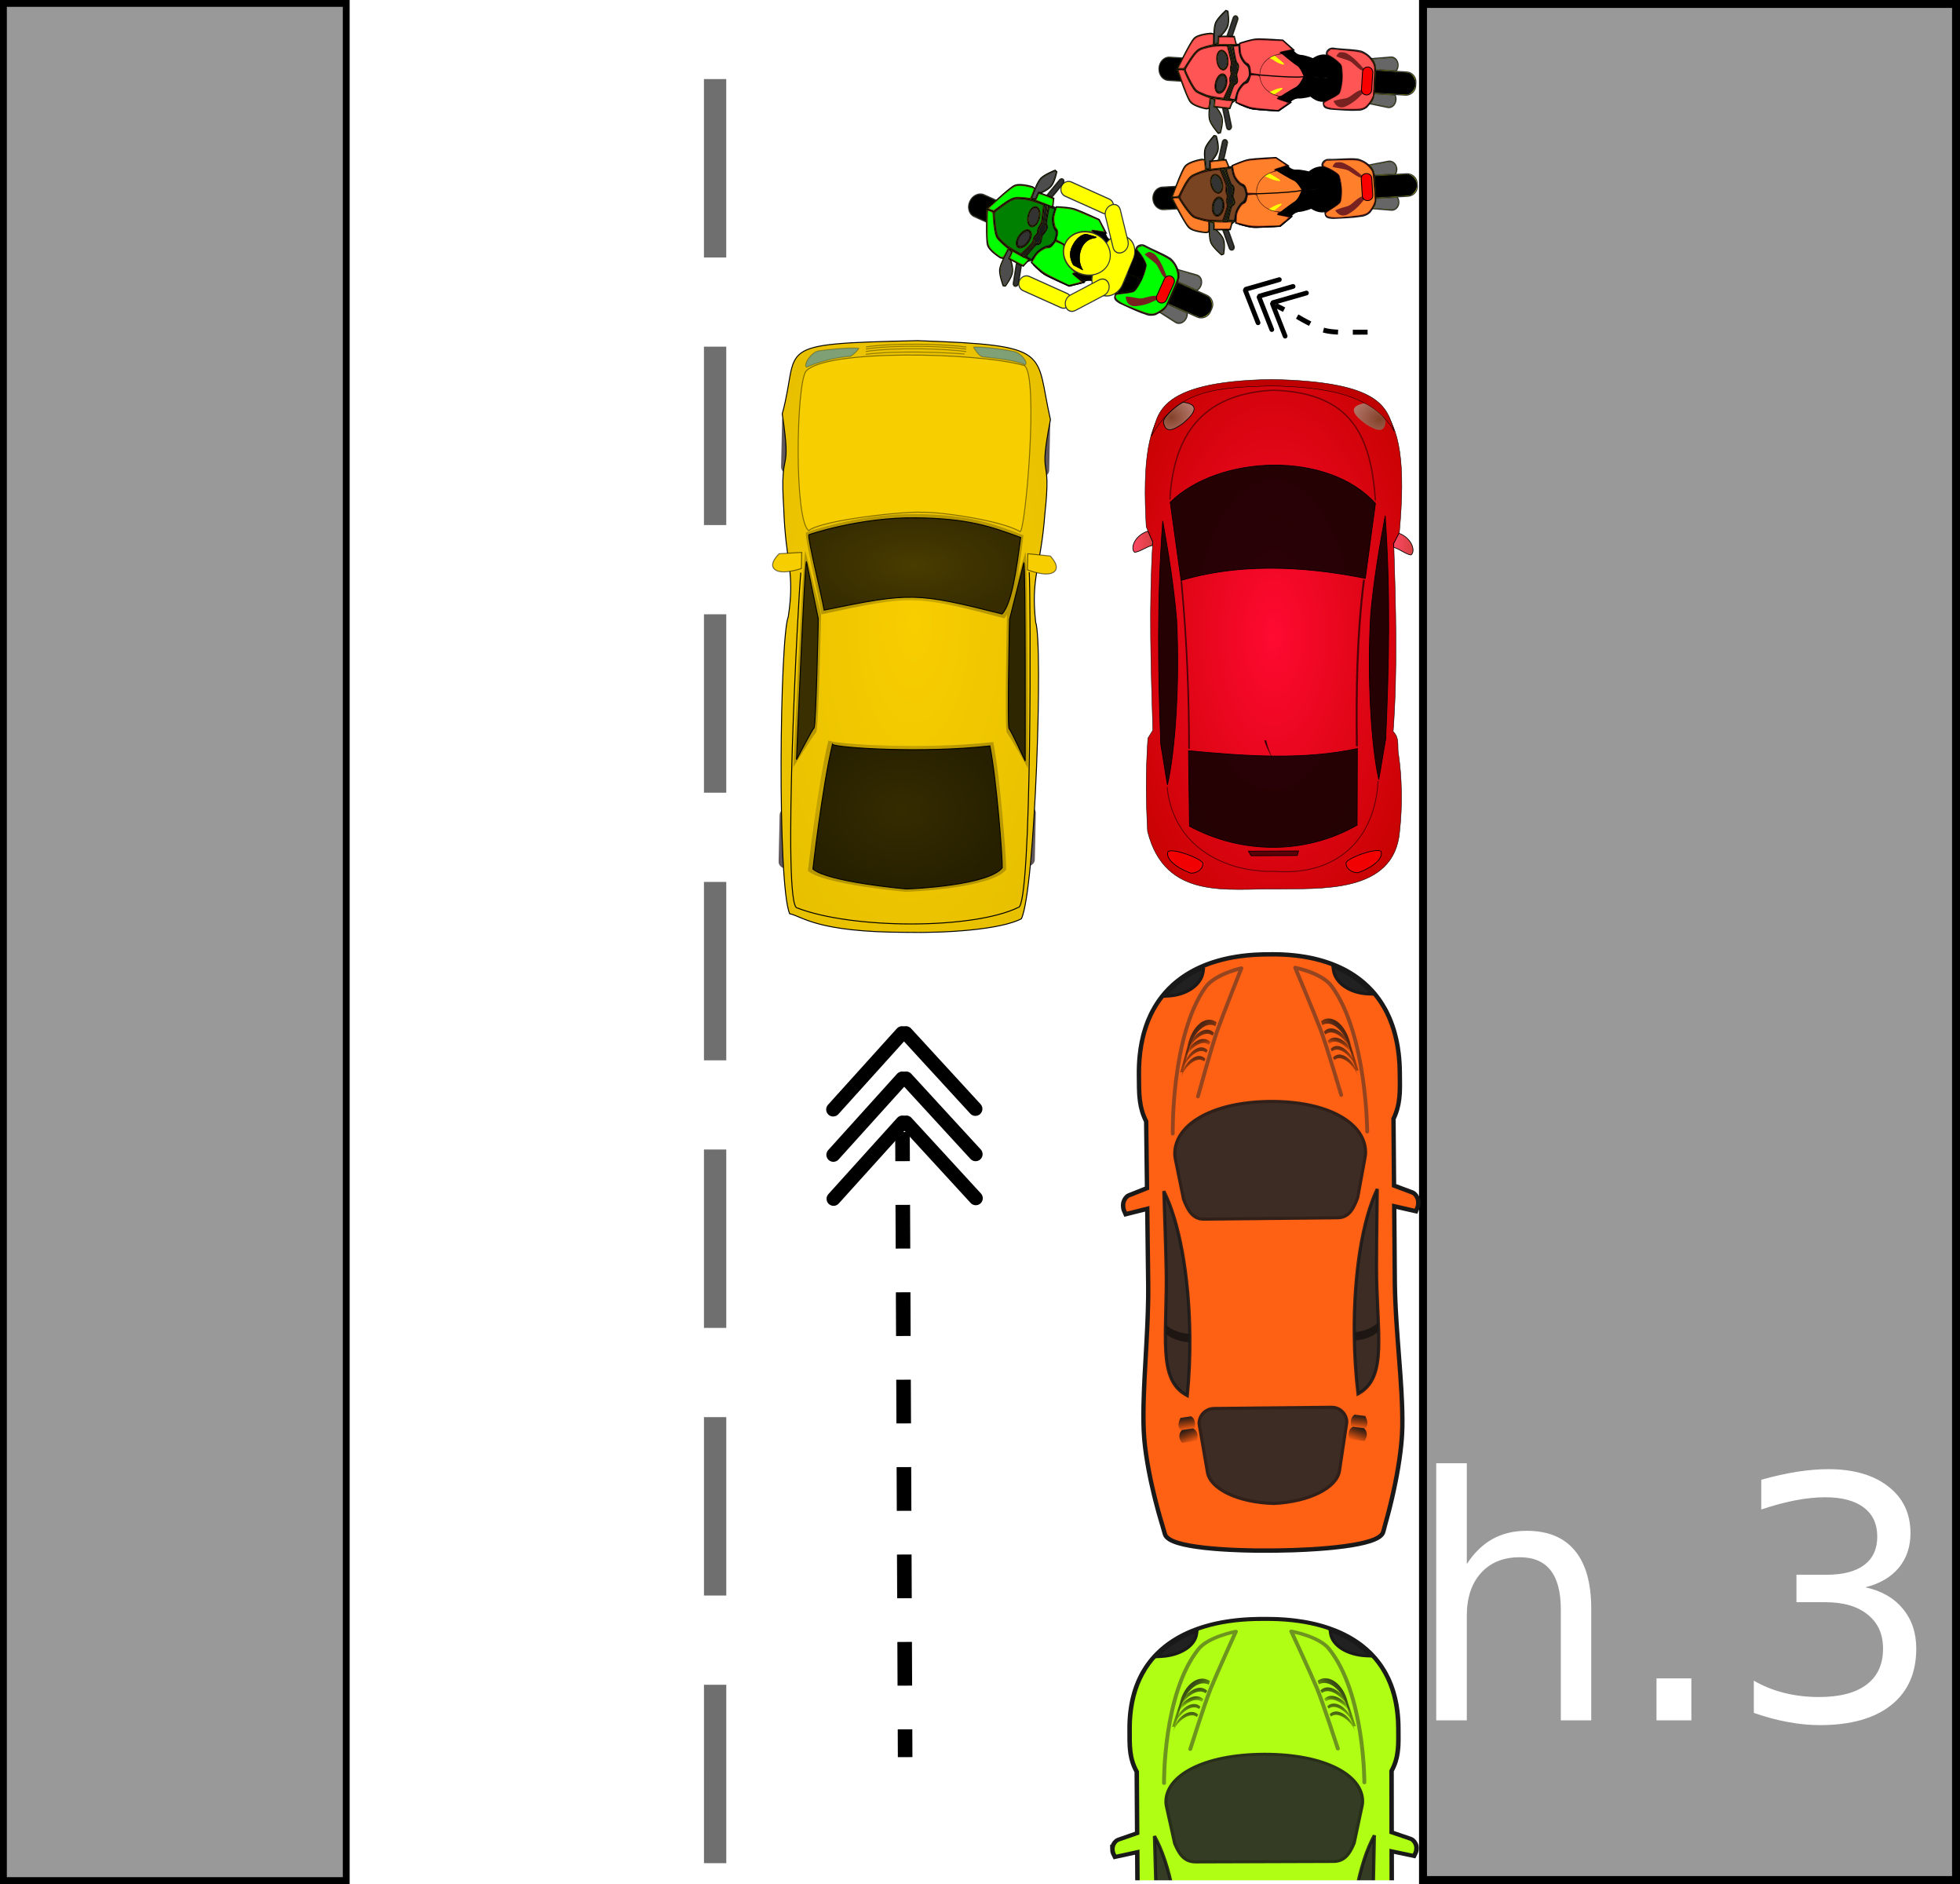 traffic accident pictograms h.3 by Gusta